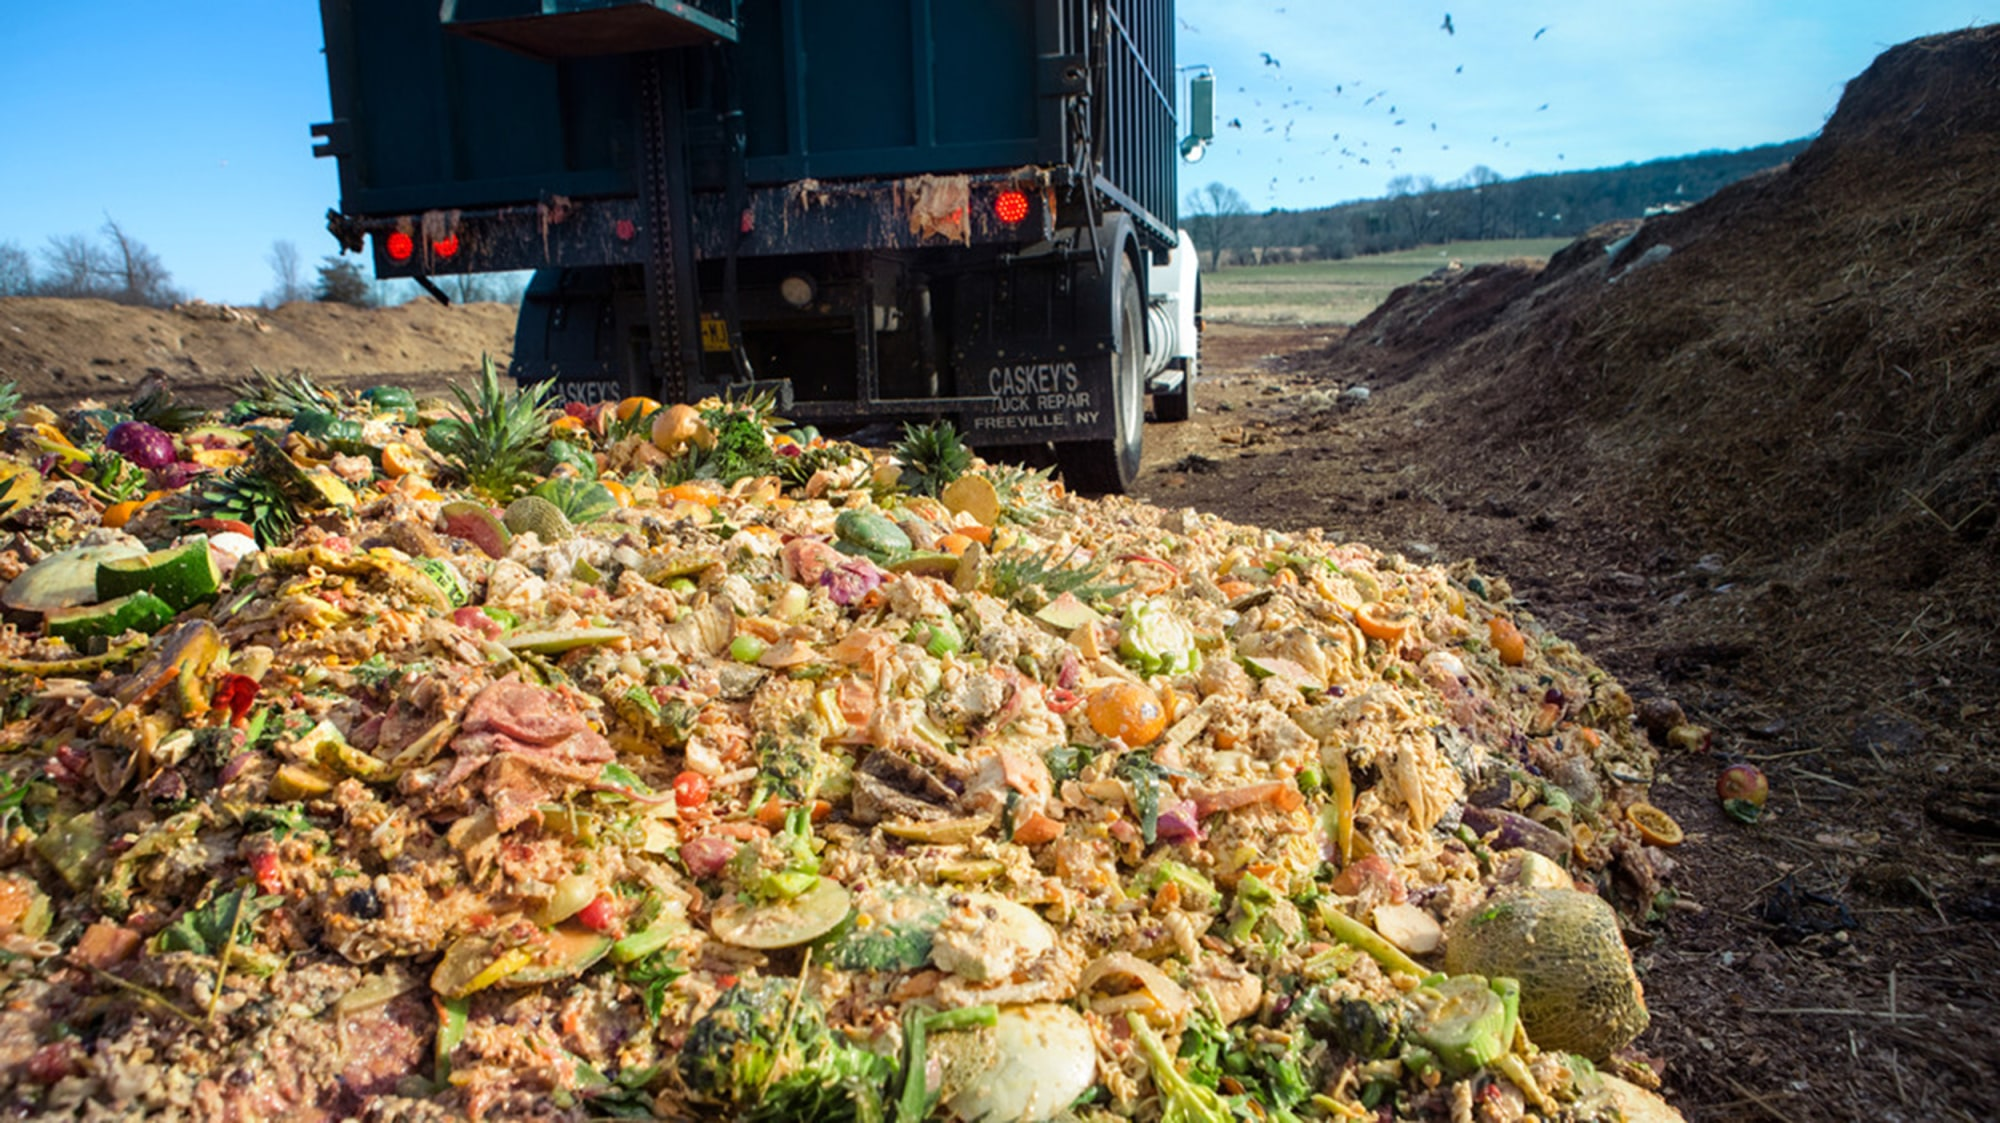 New York fights food waste with ambitious new plan